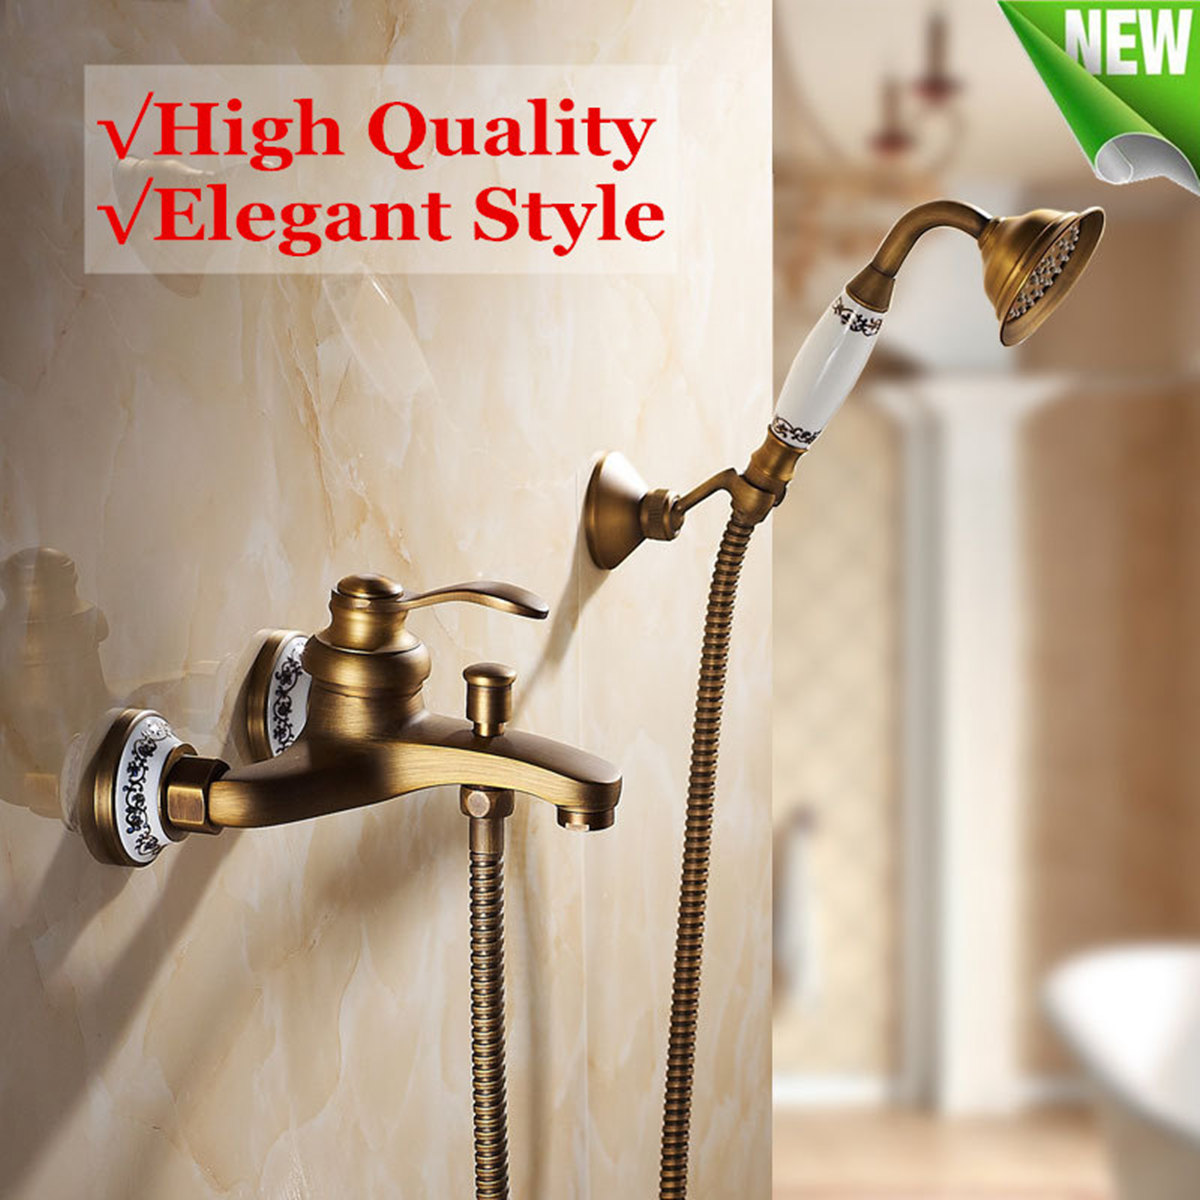 Astonishing Wall Mounted Antique Brass Shower Faucet Sets Head Bathroom Faucets Bath Tub Spout Hand Shower Held Mixer Tap Spray Waterfall Home Interior And Landscaping Eliaenasavecom